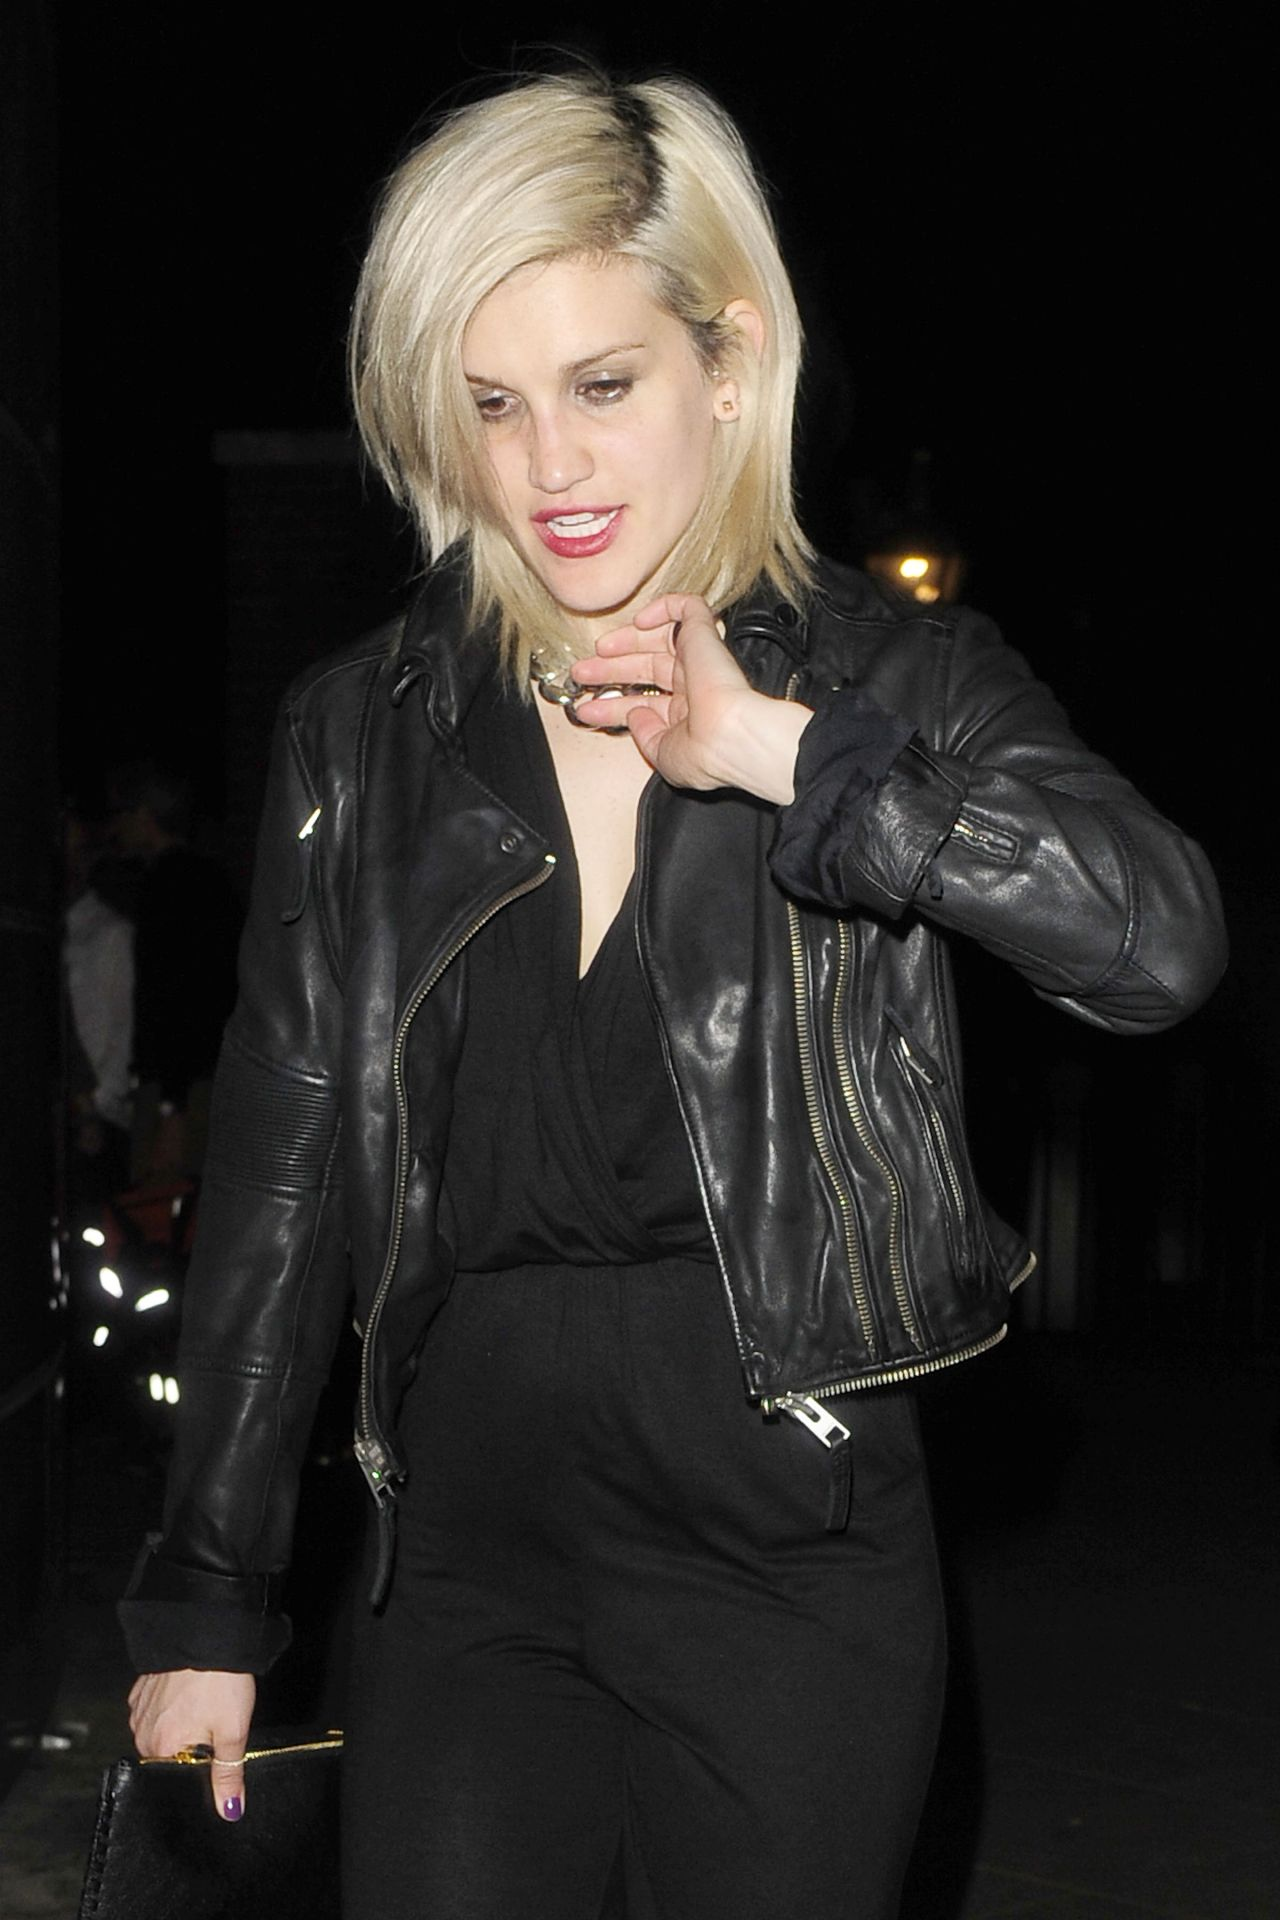 Ashley Roberts Night out Style - Bodo